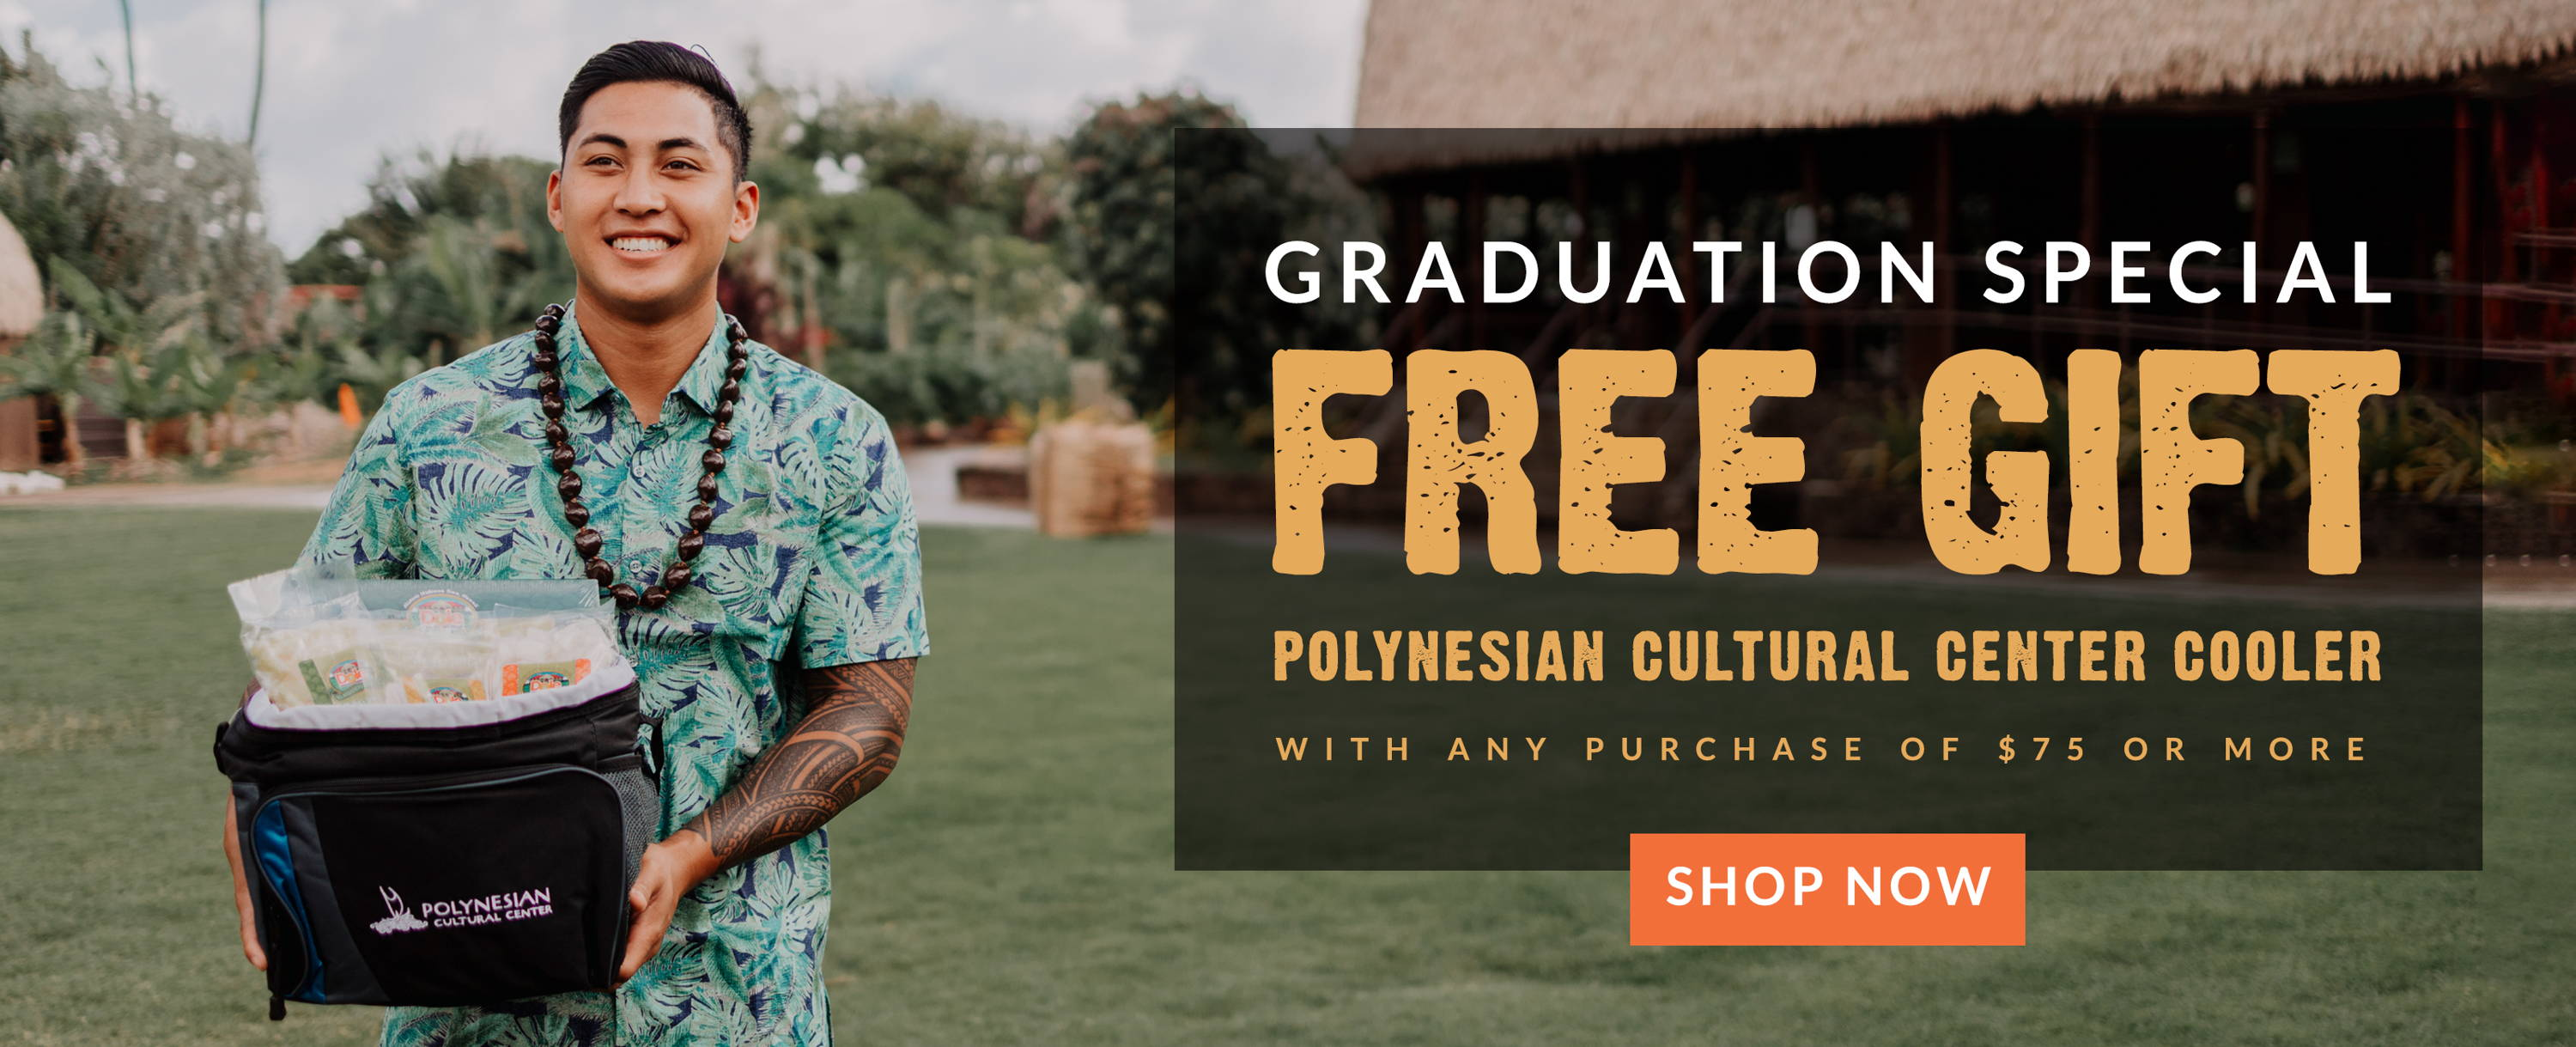 GRADUATION SPECIAL GET FREE PCC COOLER